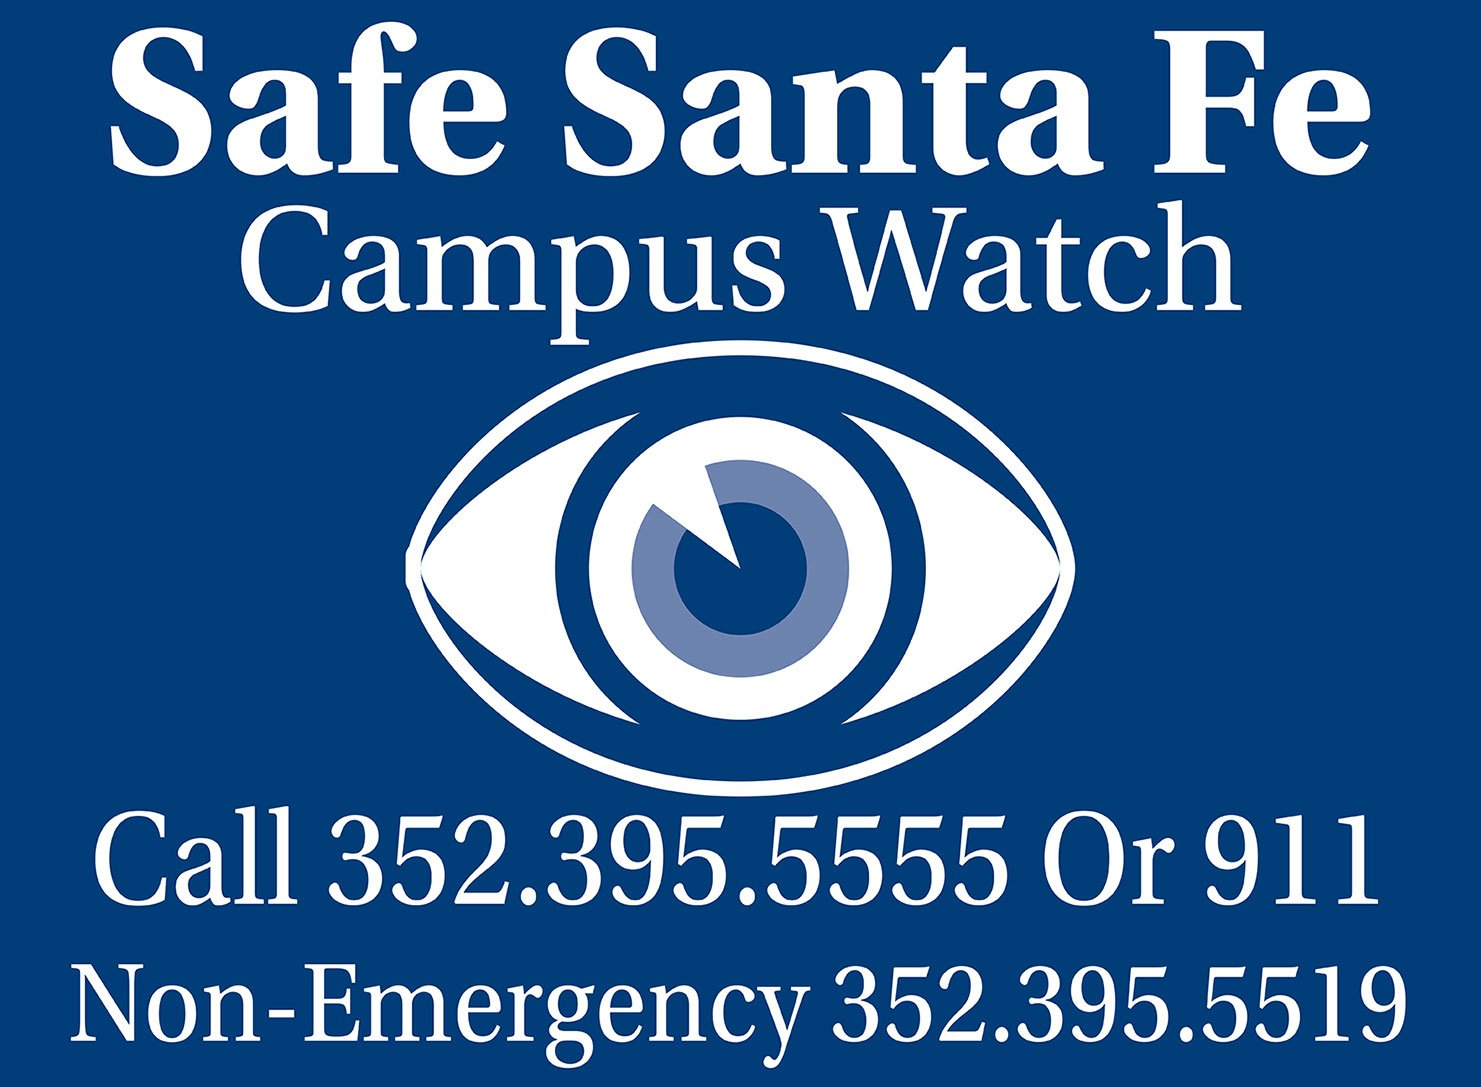 Safe Santa Fe Campus Watch